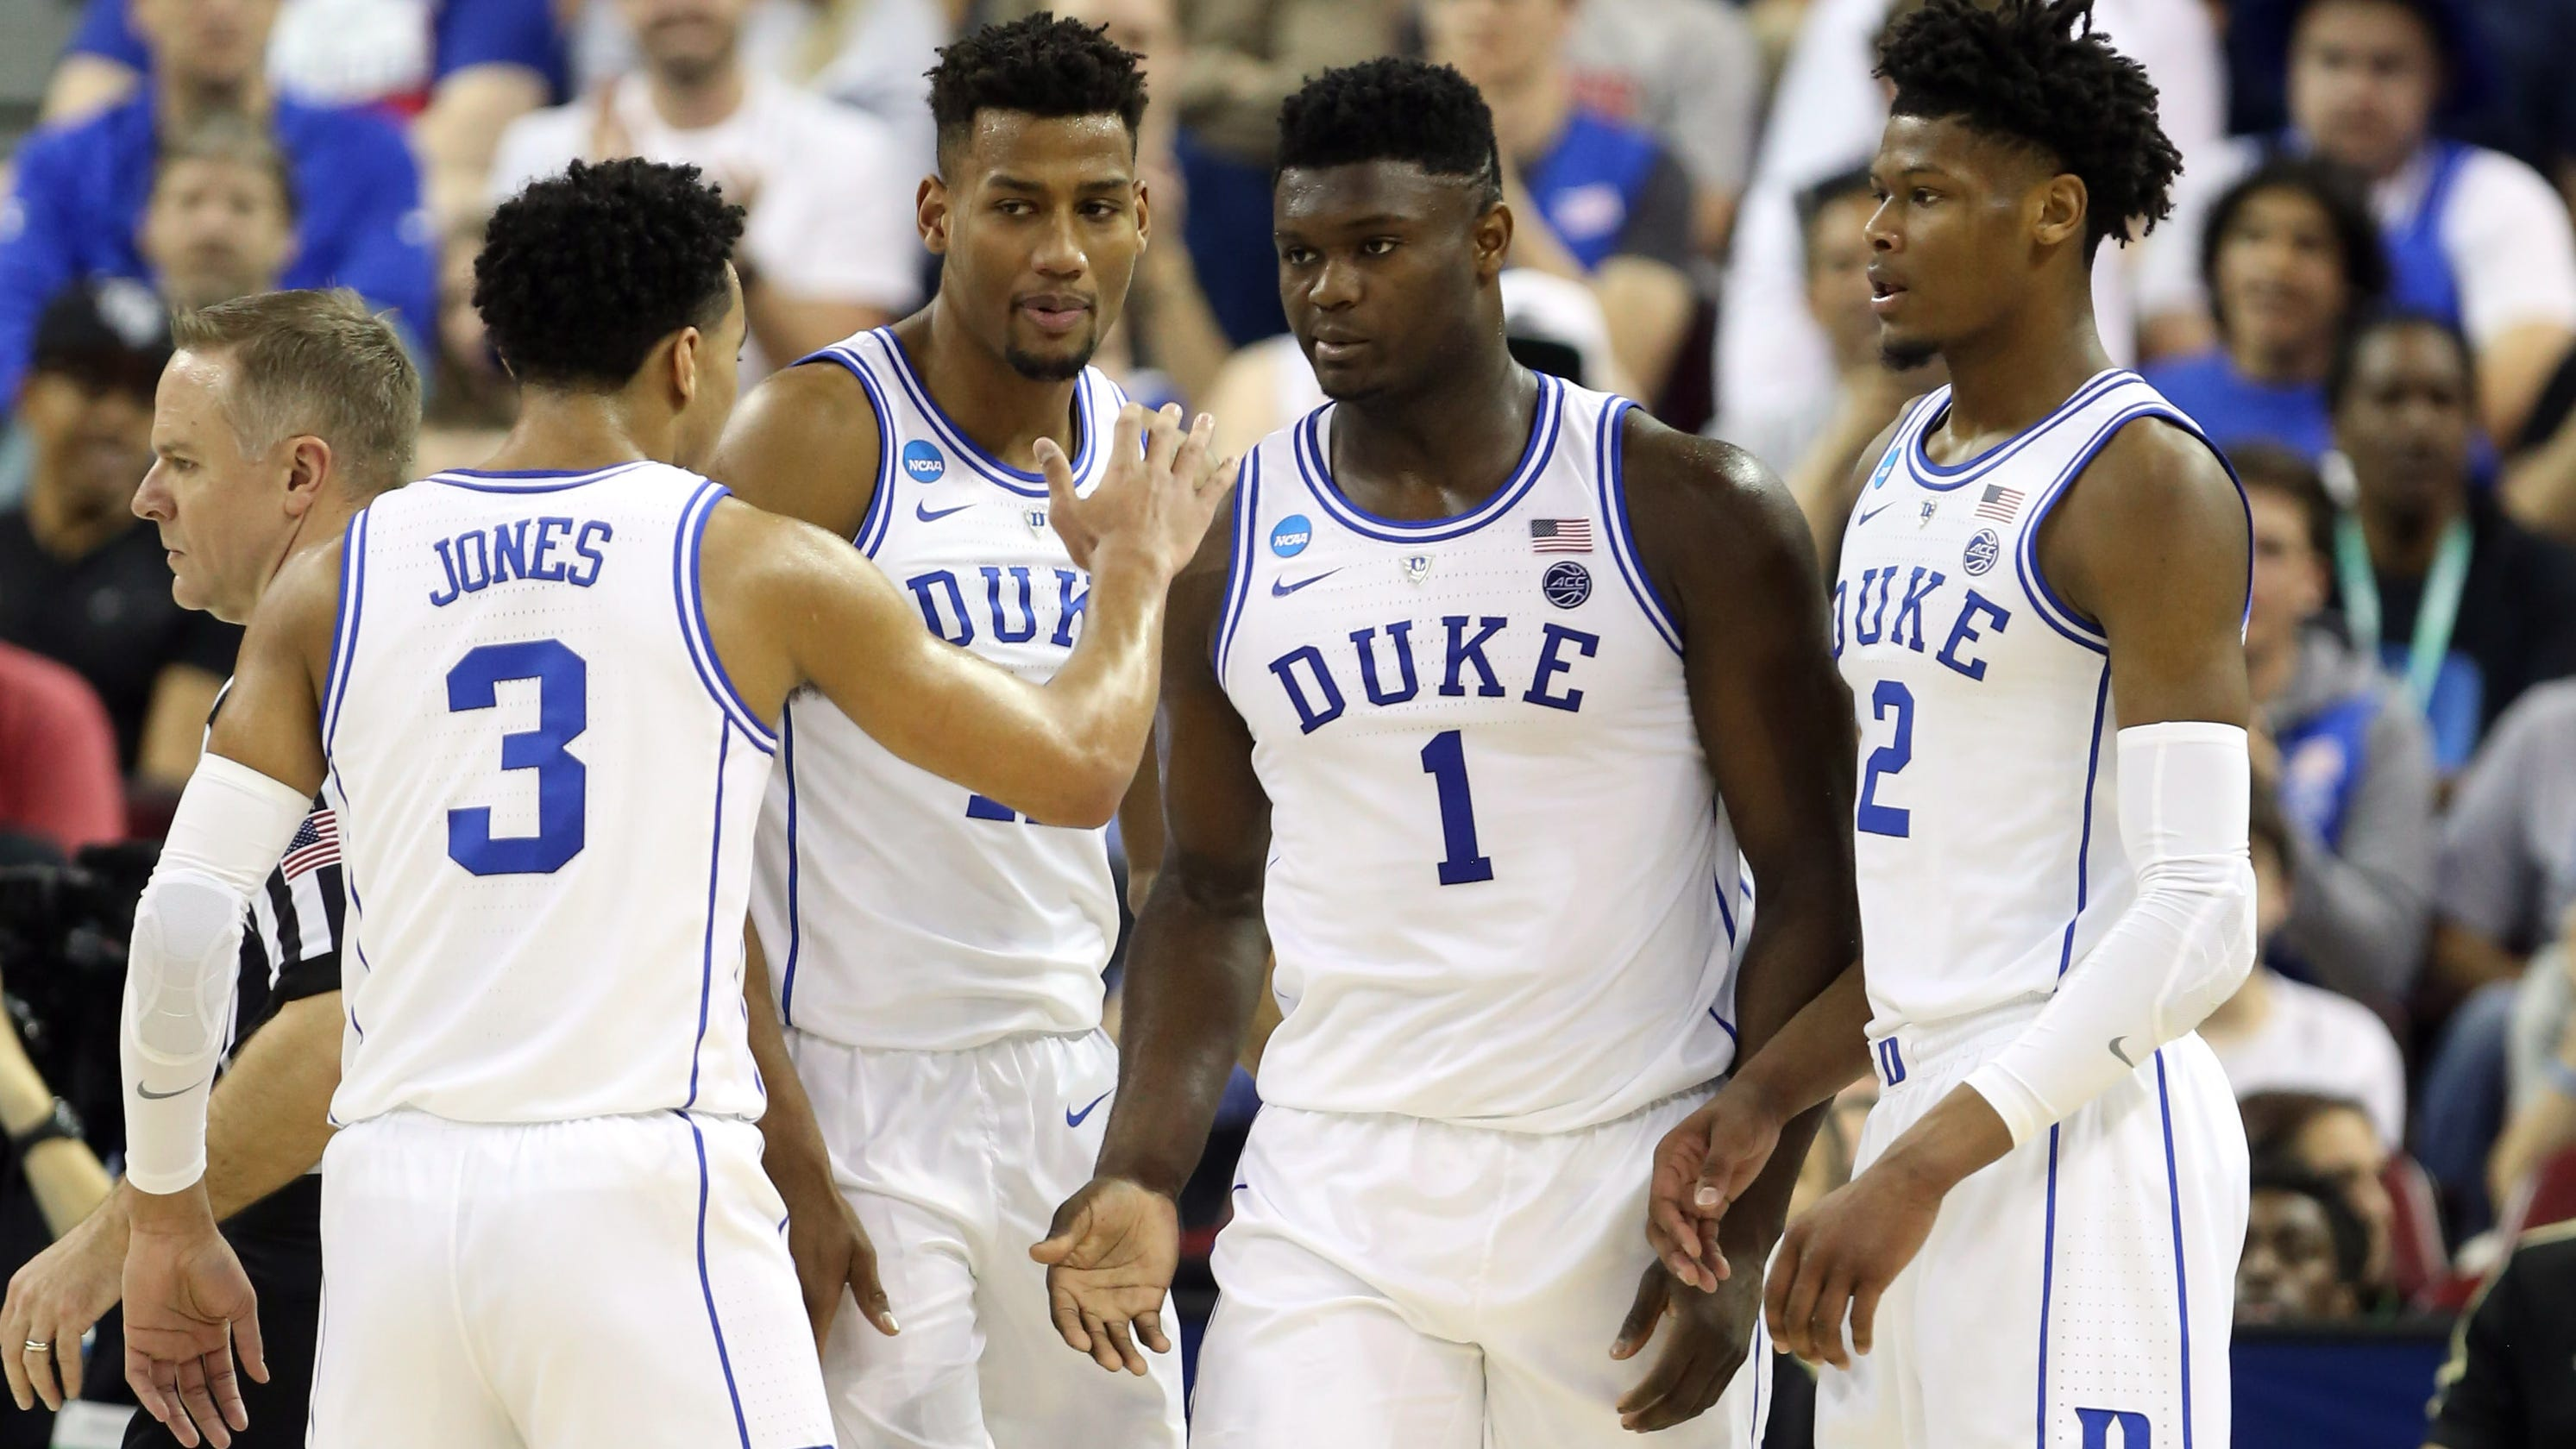 March Madness: No. 1 Duke does just enough to hold off Central Florida at buzzer